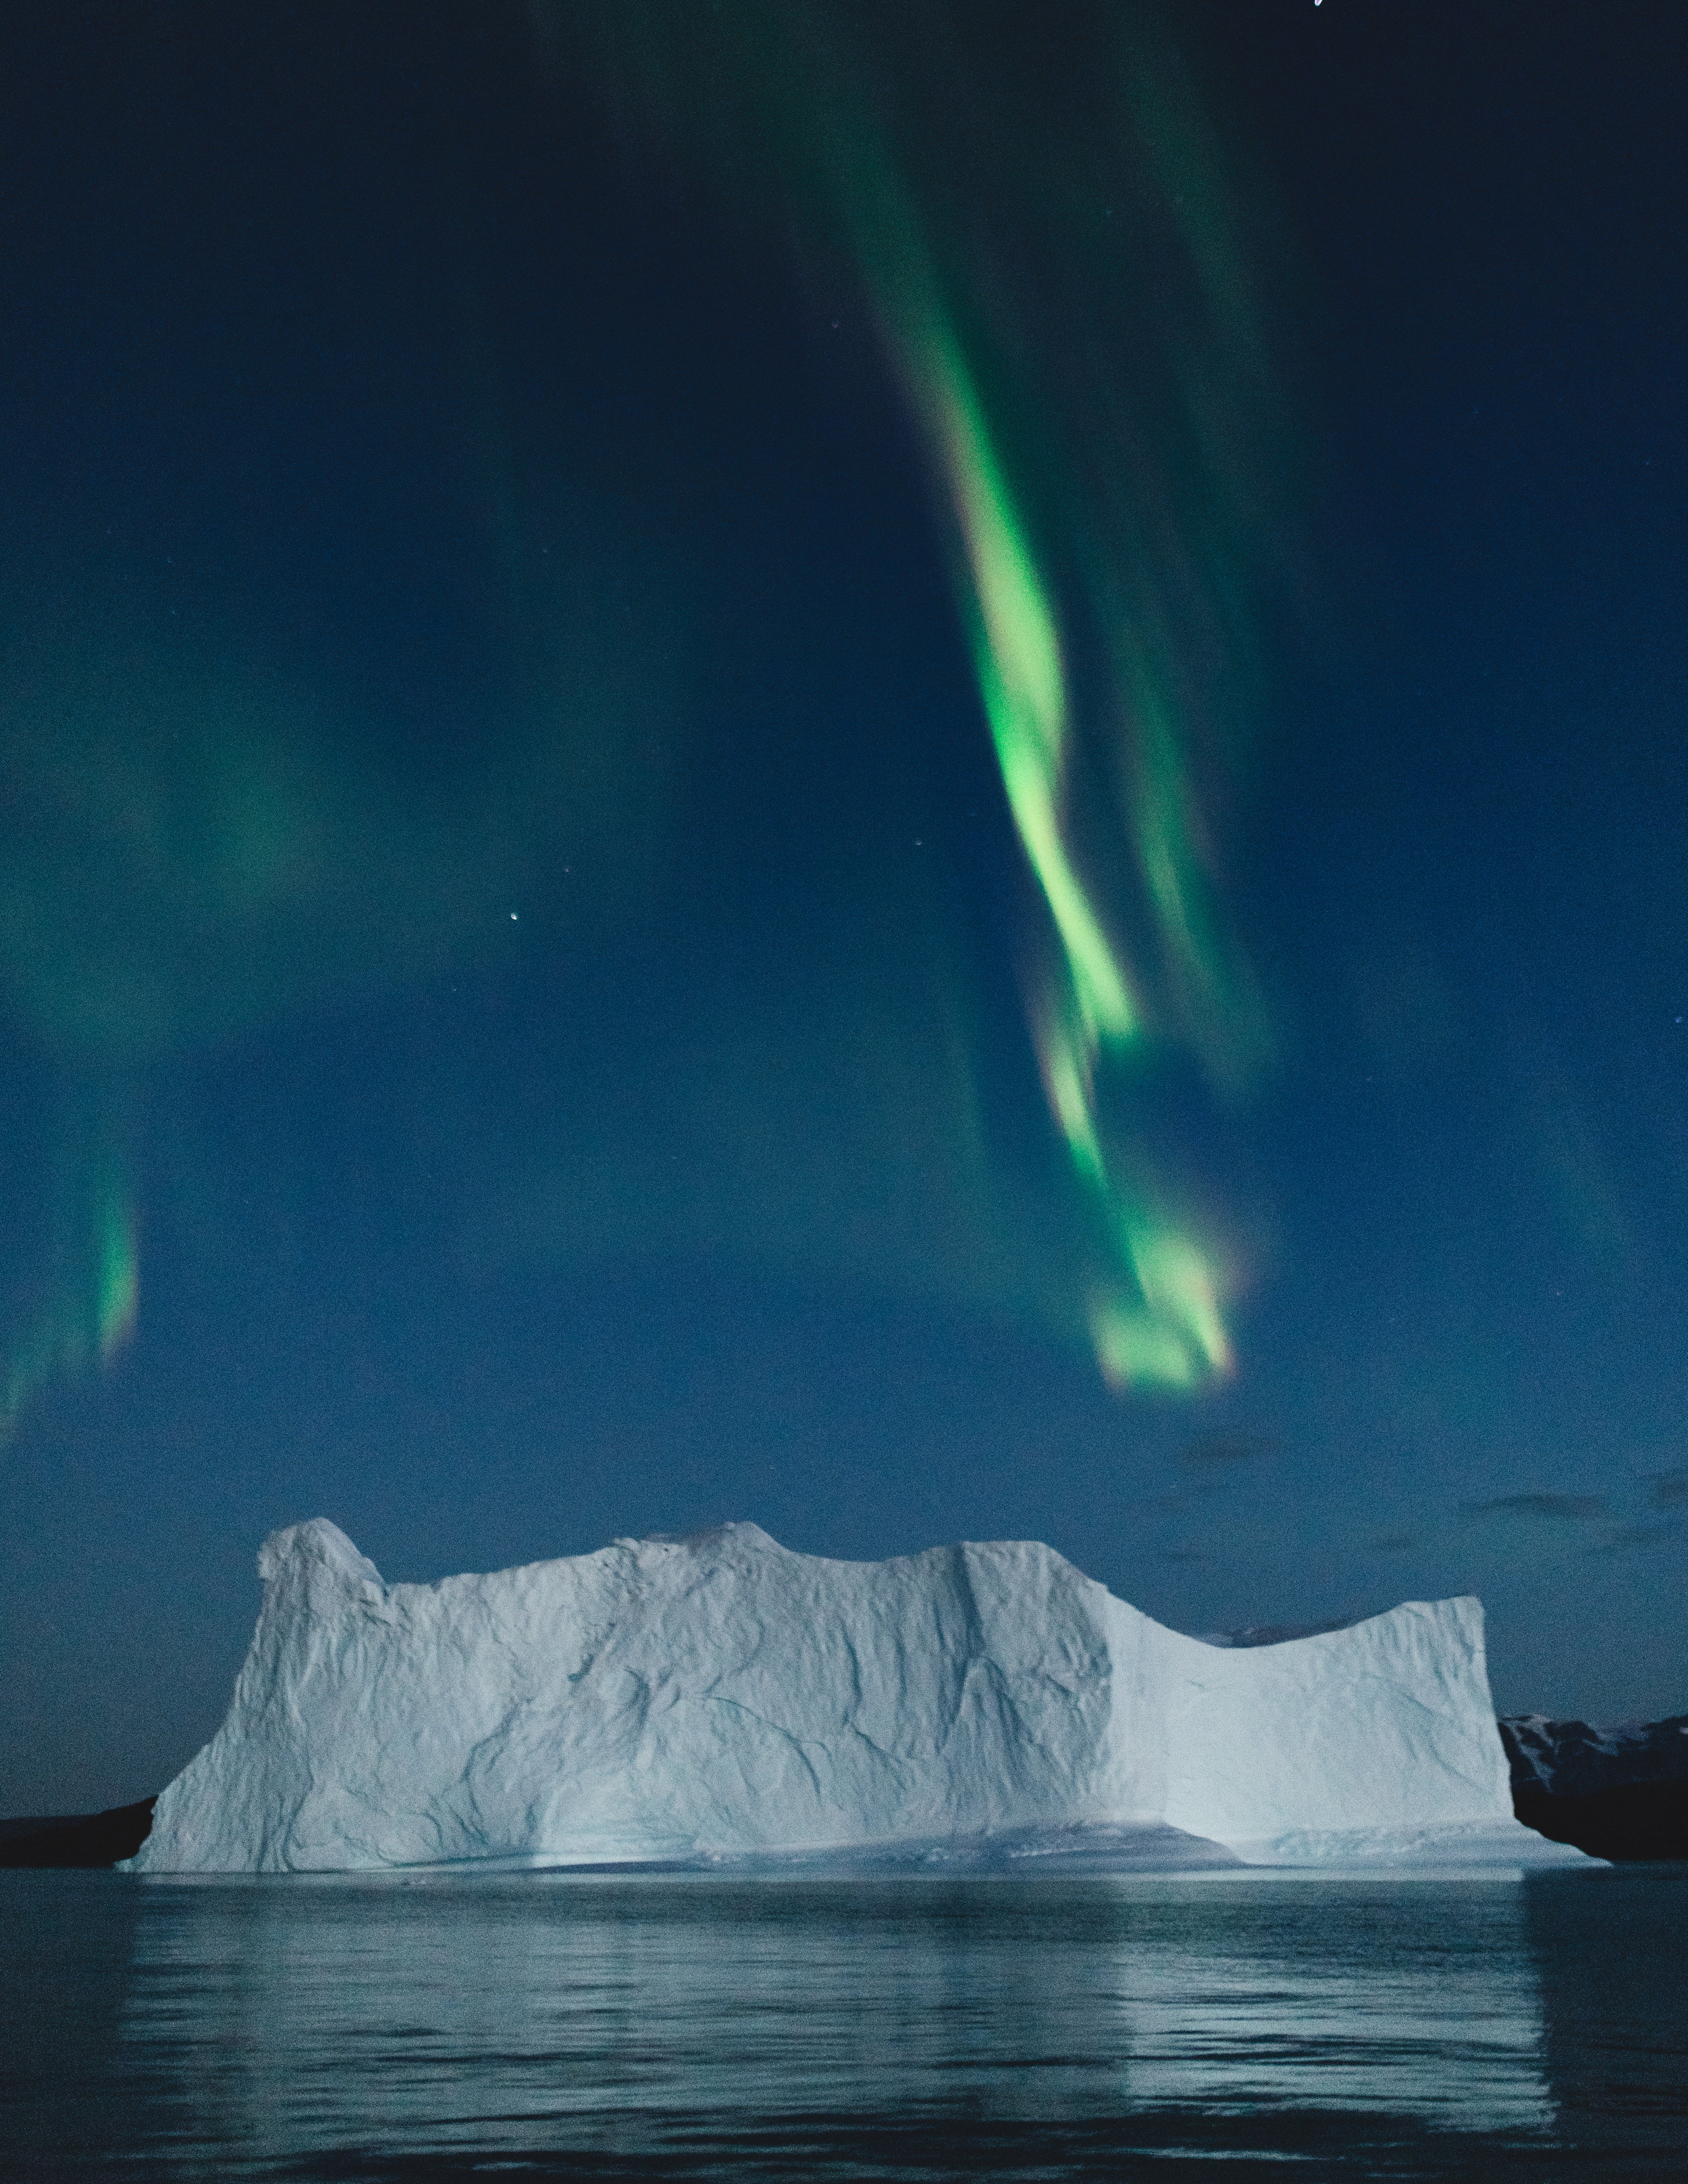 Aurora over iceberg: Northeast Greenland 2018